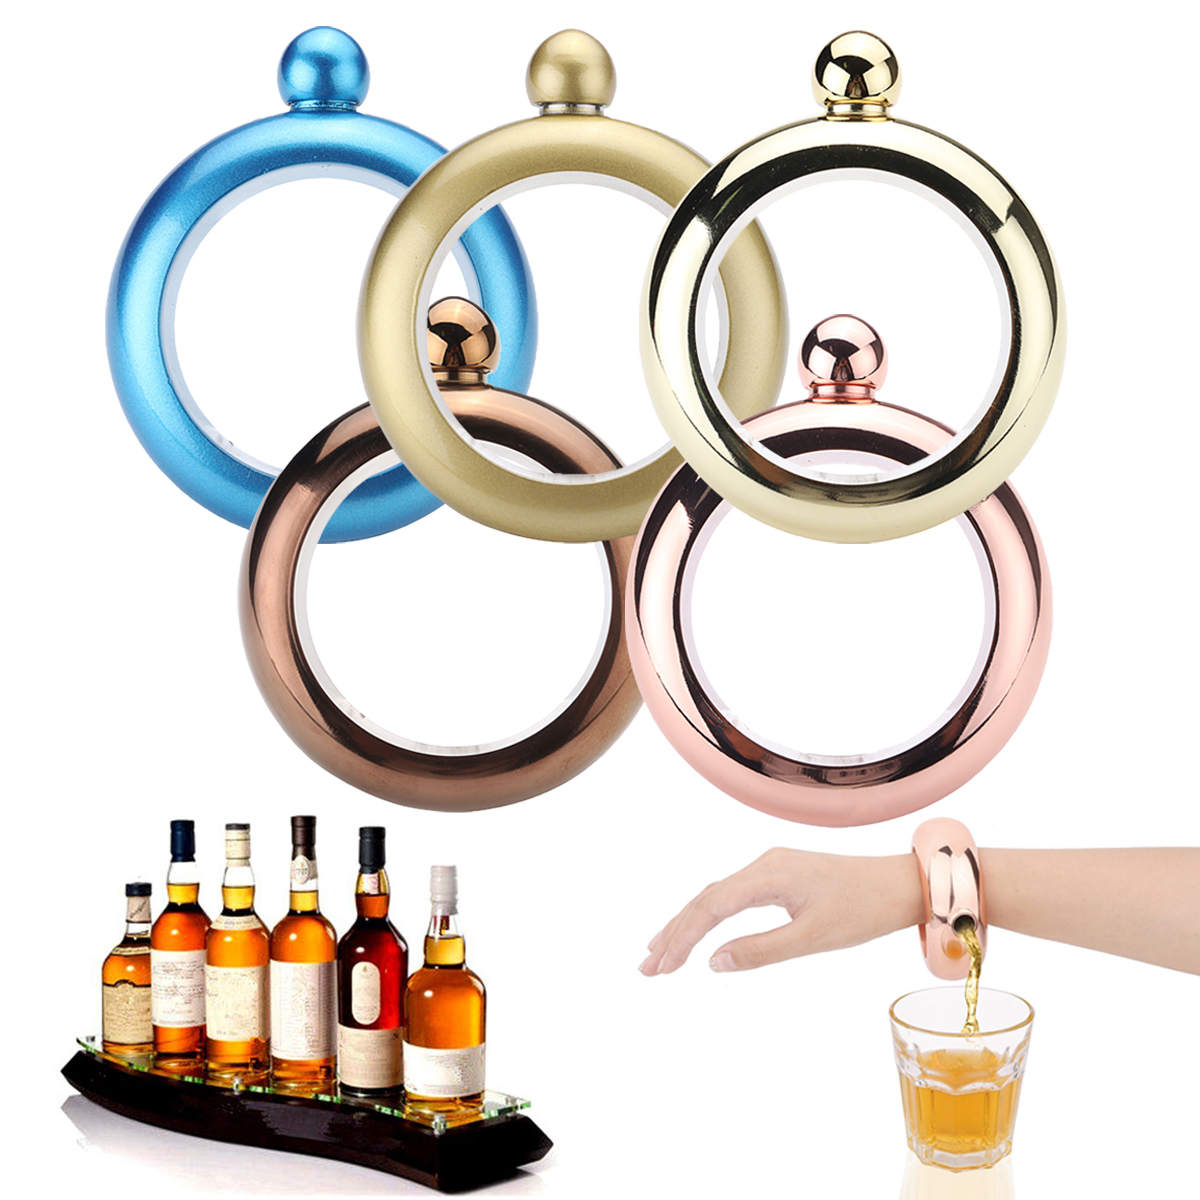 Bracelet Bangle Flask Drinking Stainless Steel Whiskey Hidden Hip Flasket Jewelry Gadget